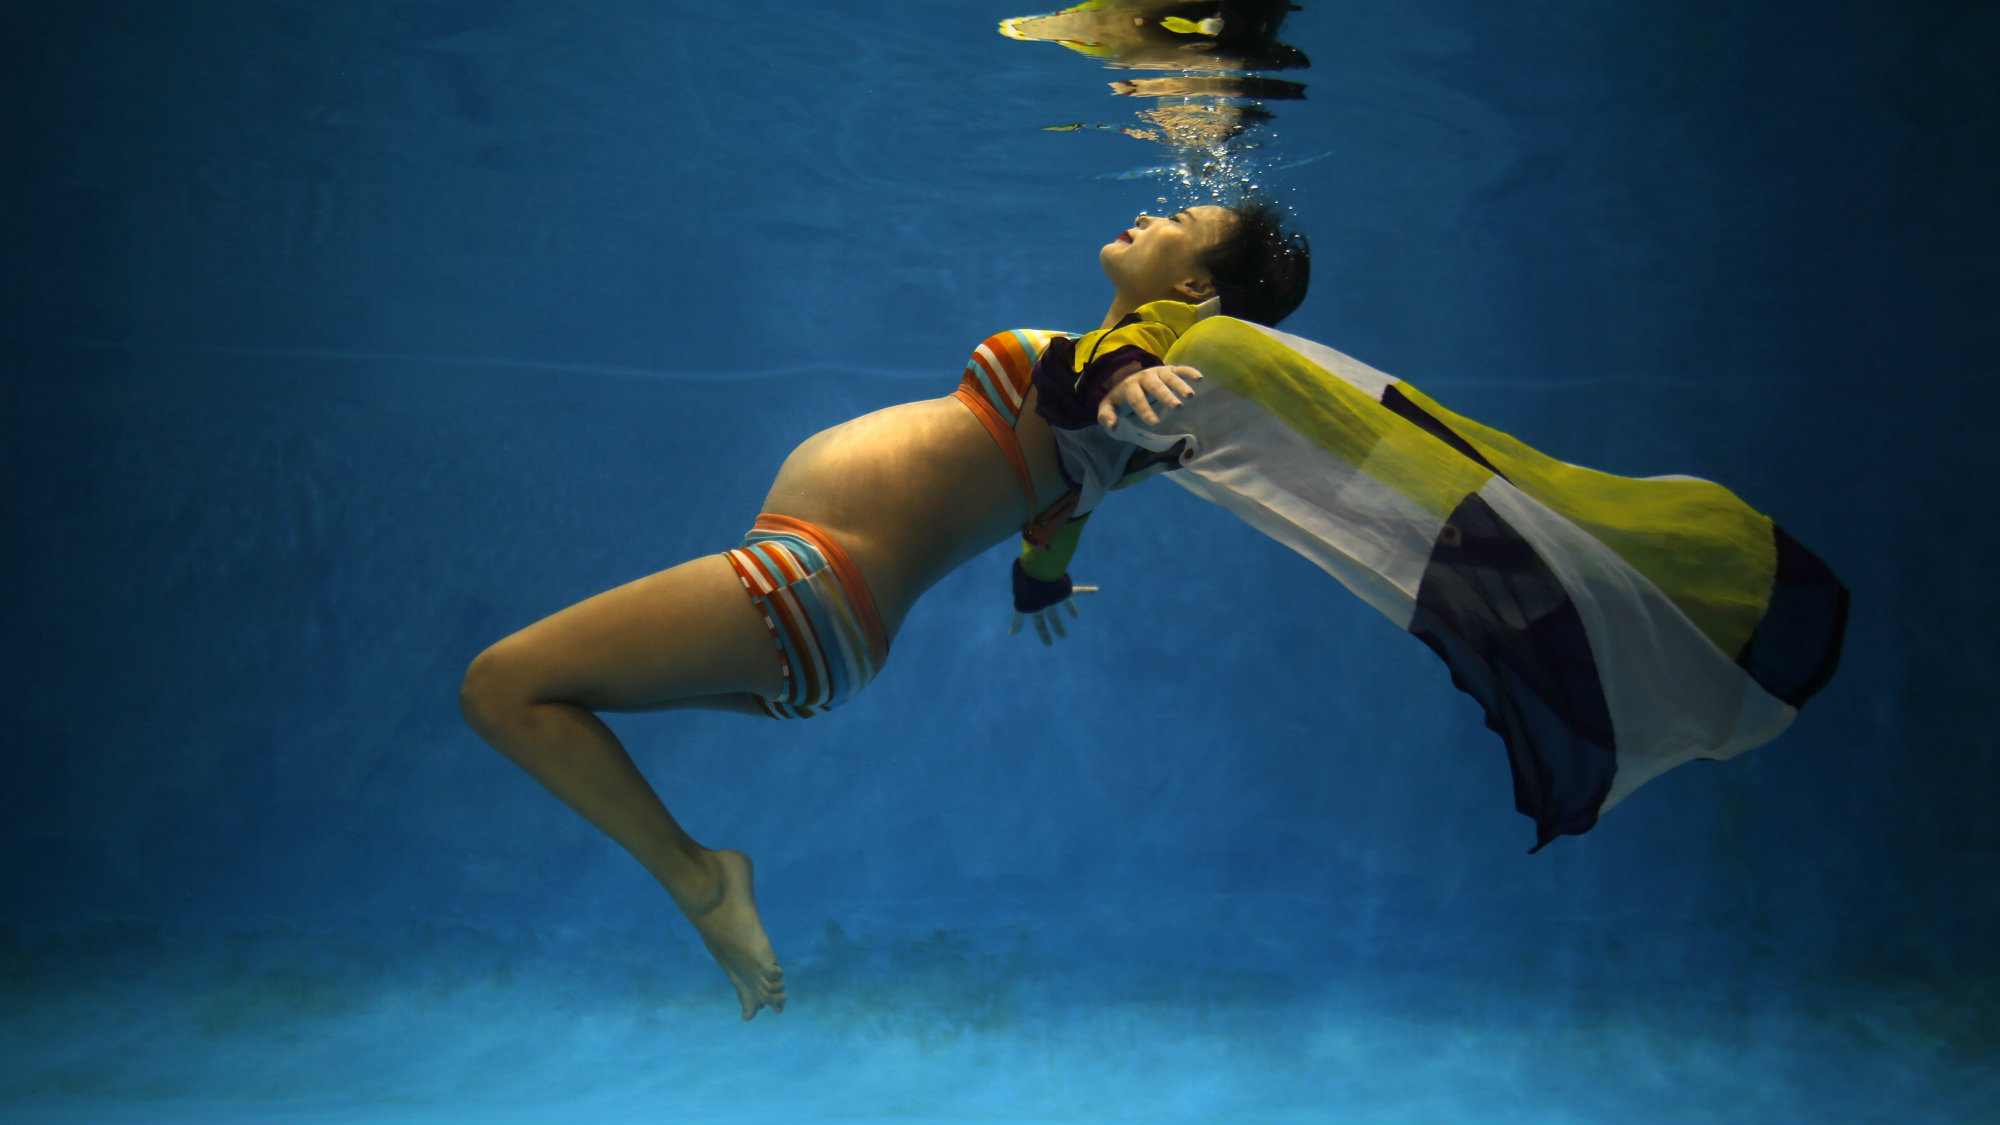 Jiejin Qiu, who is six months pregnant with her first baby, poses underwater during a photo shoot at a local wedding photo studio in Shanghai September 5, 2014.